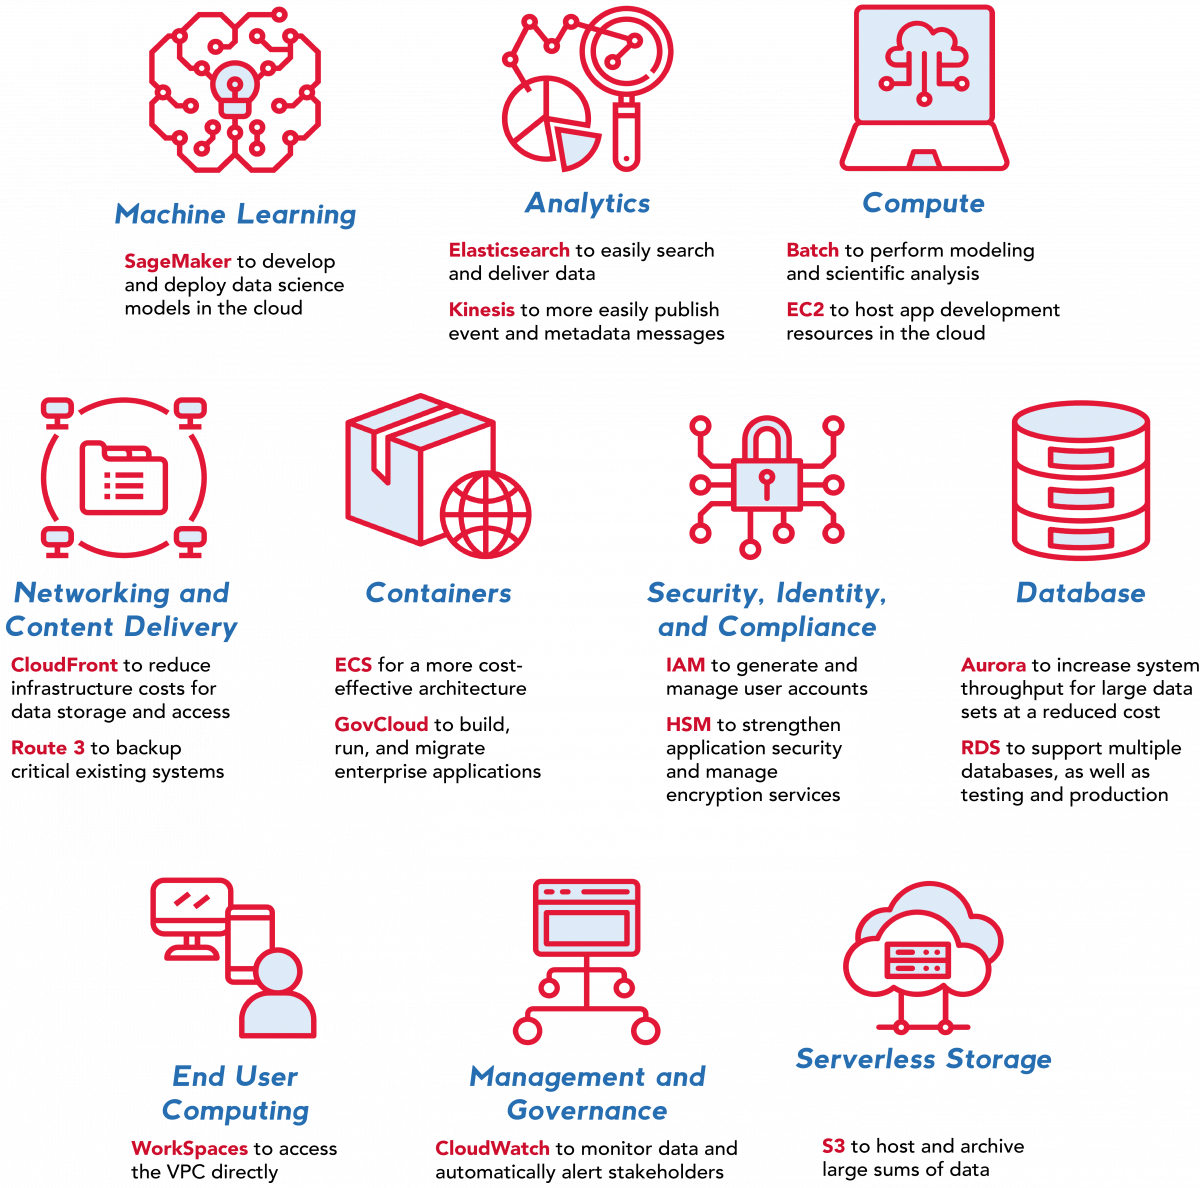 Attain has deep experience with AWS products such as Aurora, RDS, CloudFront, Route 53, CloudWatch, S3, IAM, HSM, Batch, EC2, ECS, GovCloud, WorkSpaces, SageMaker, Elasticsearch, and Kinesis.